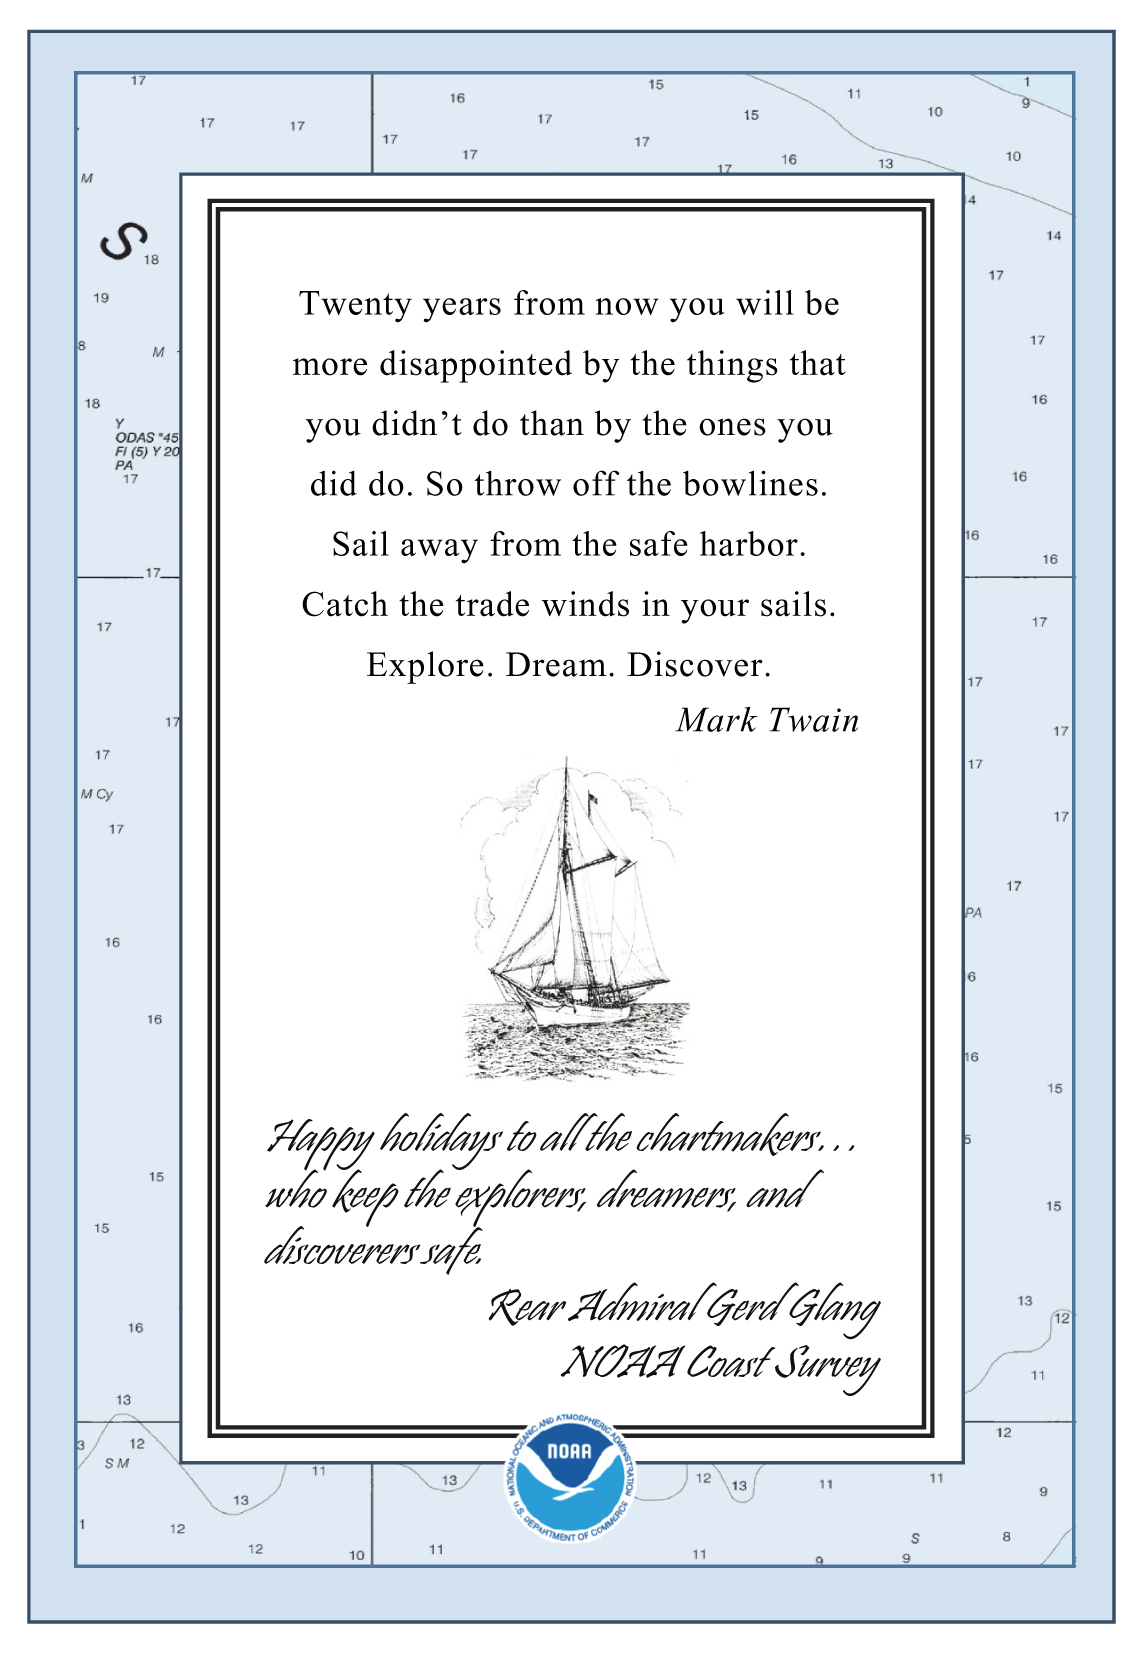 Cartography noaa coast survey page 3 holiday card 2013 buycottarizona Image collections